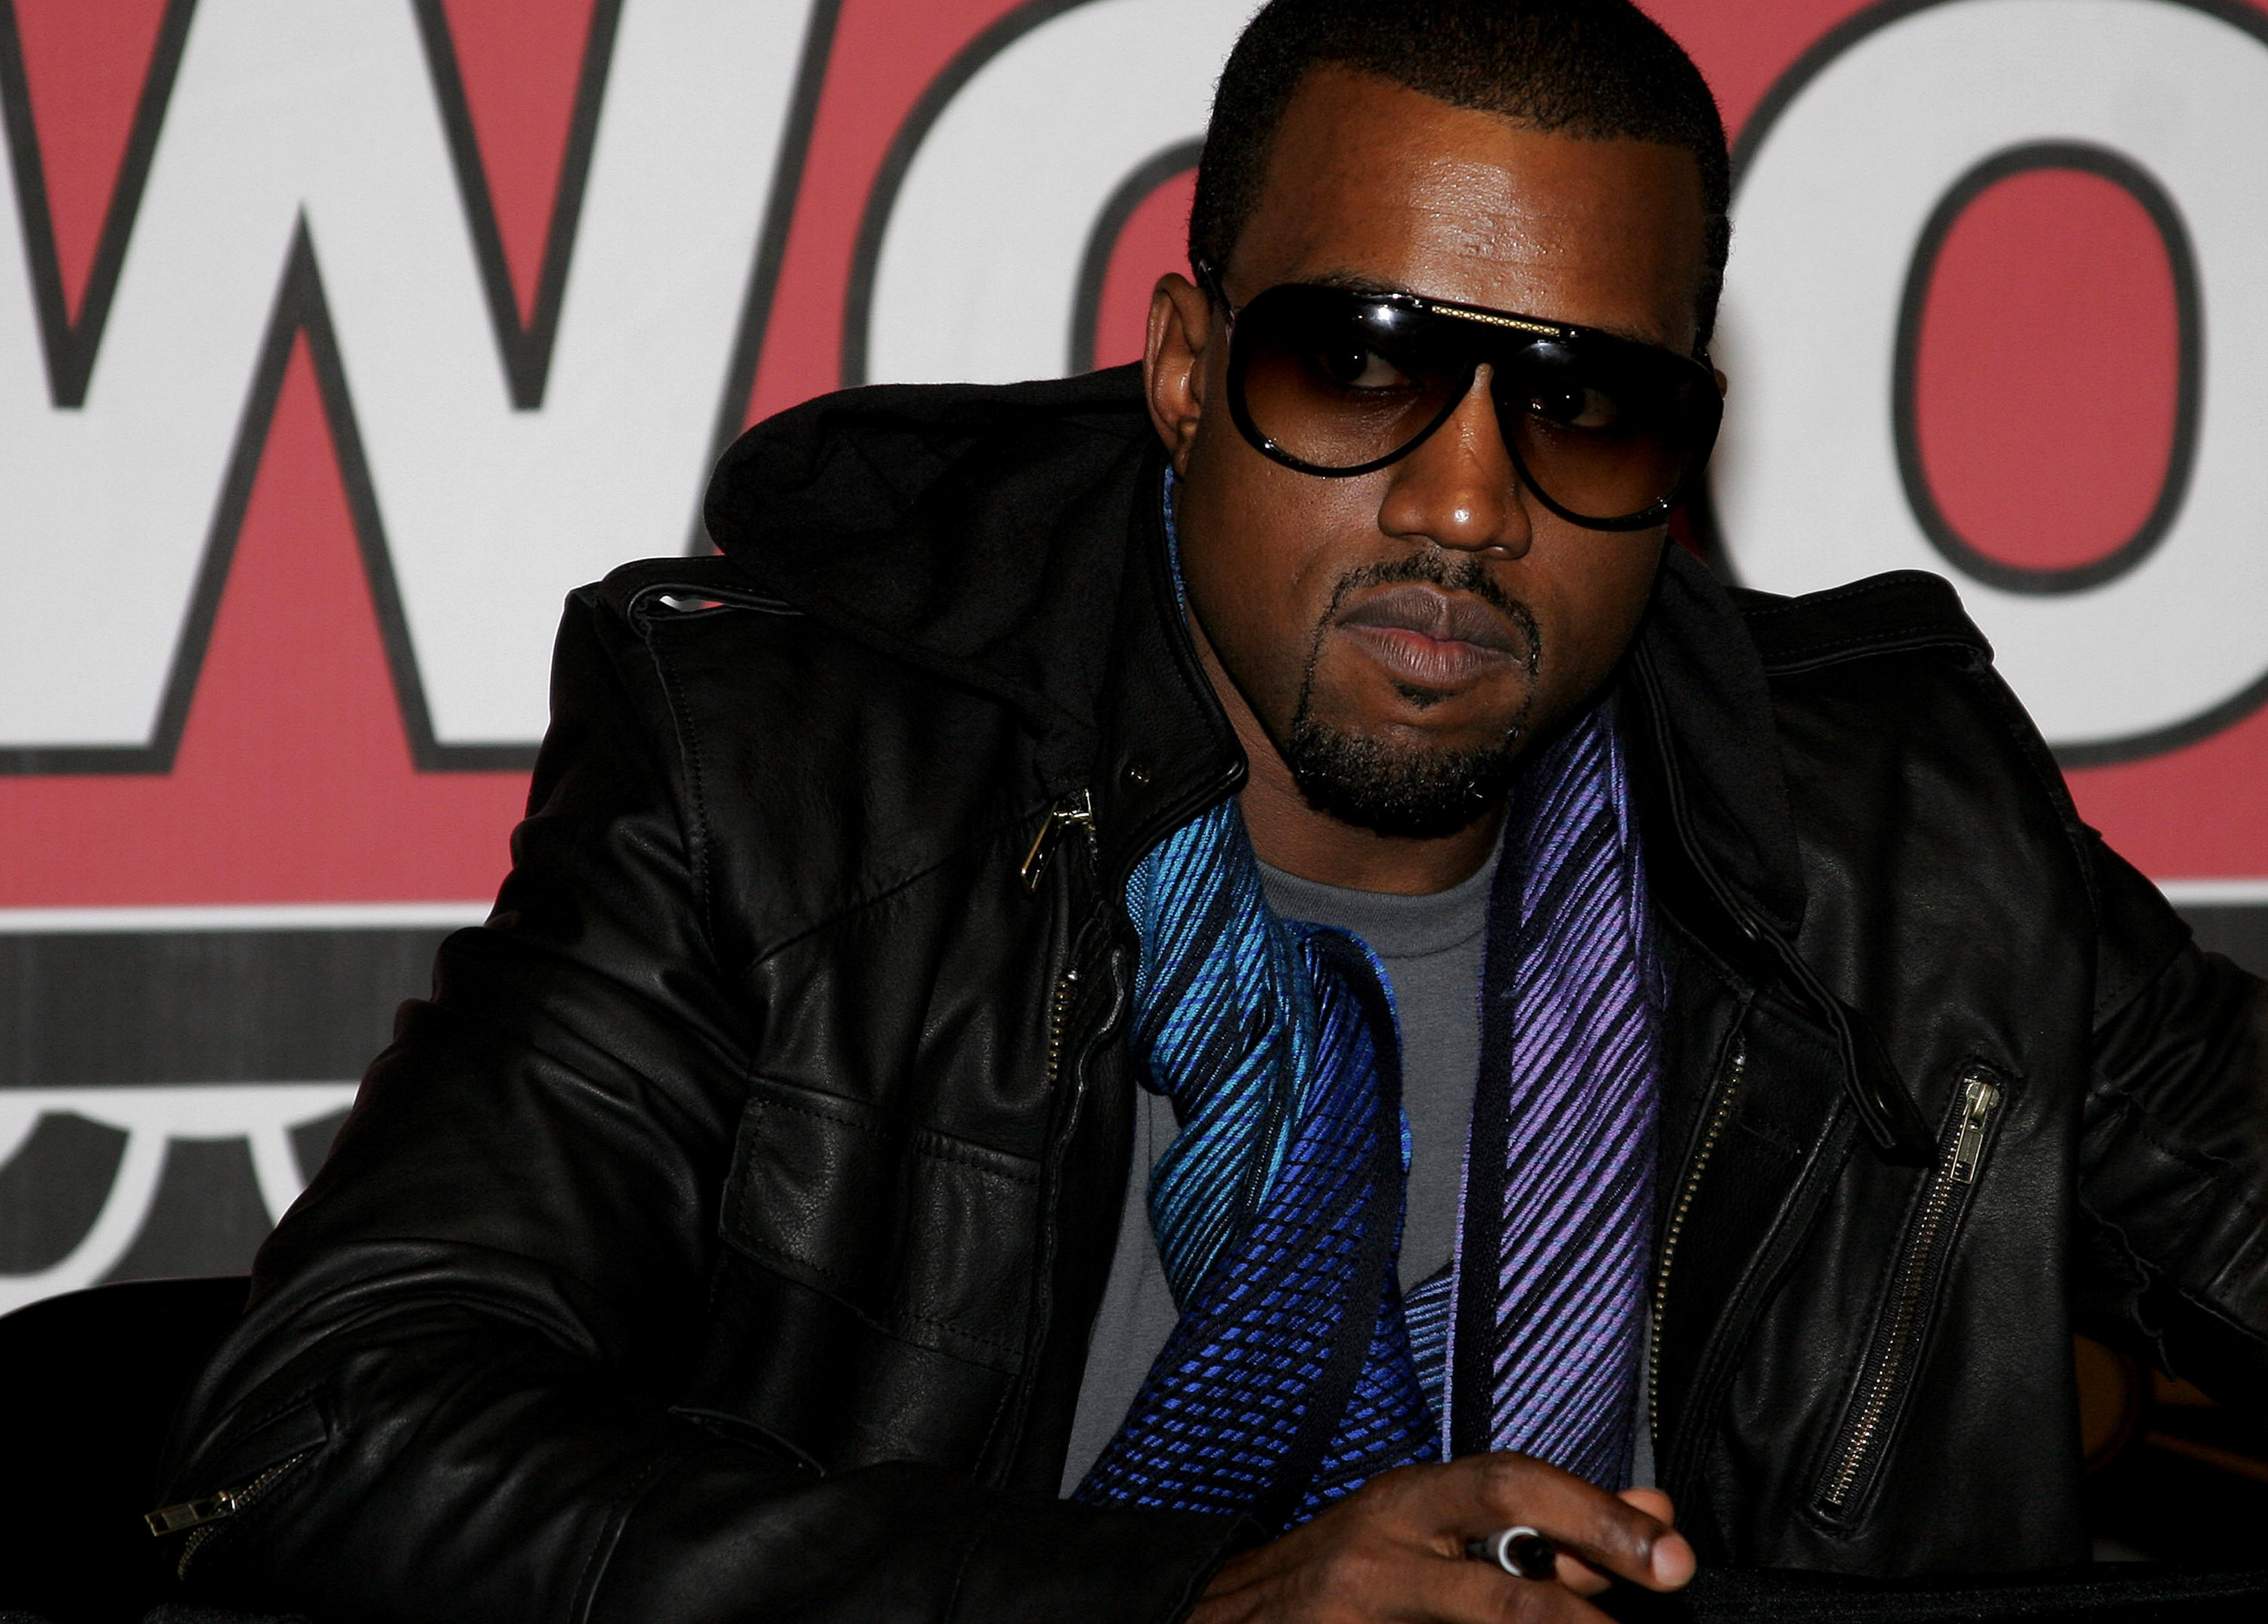 The artist who painted Kanye West mural in Chicago will sell it as an NFT on Avalanche